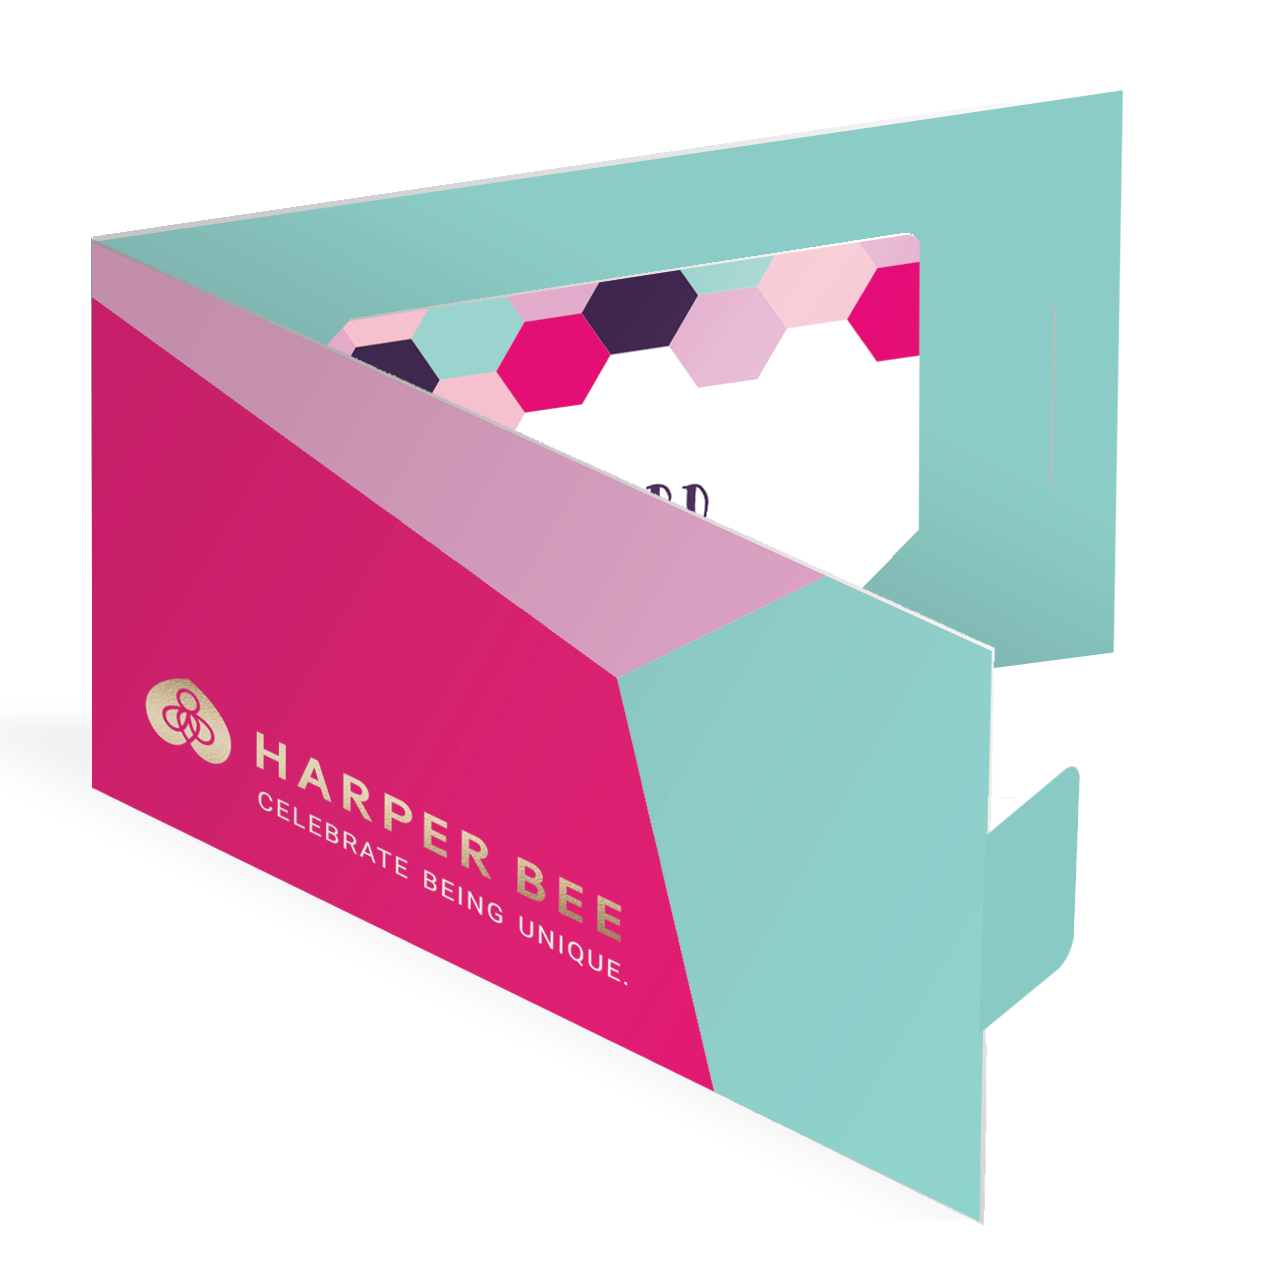 Card Wallet - Harper Bee